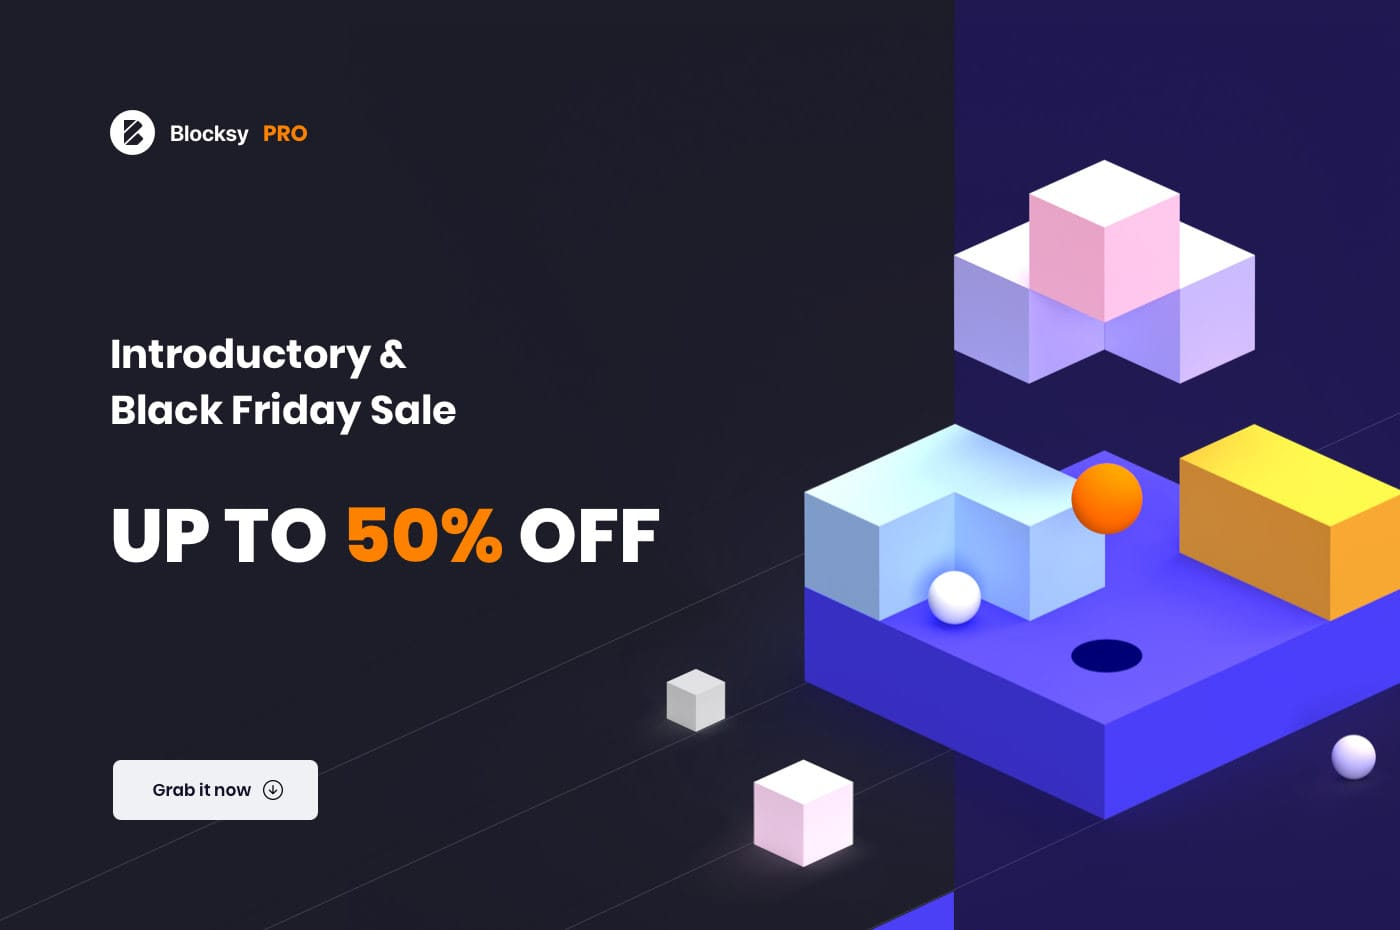 Blocksy Pro Launched